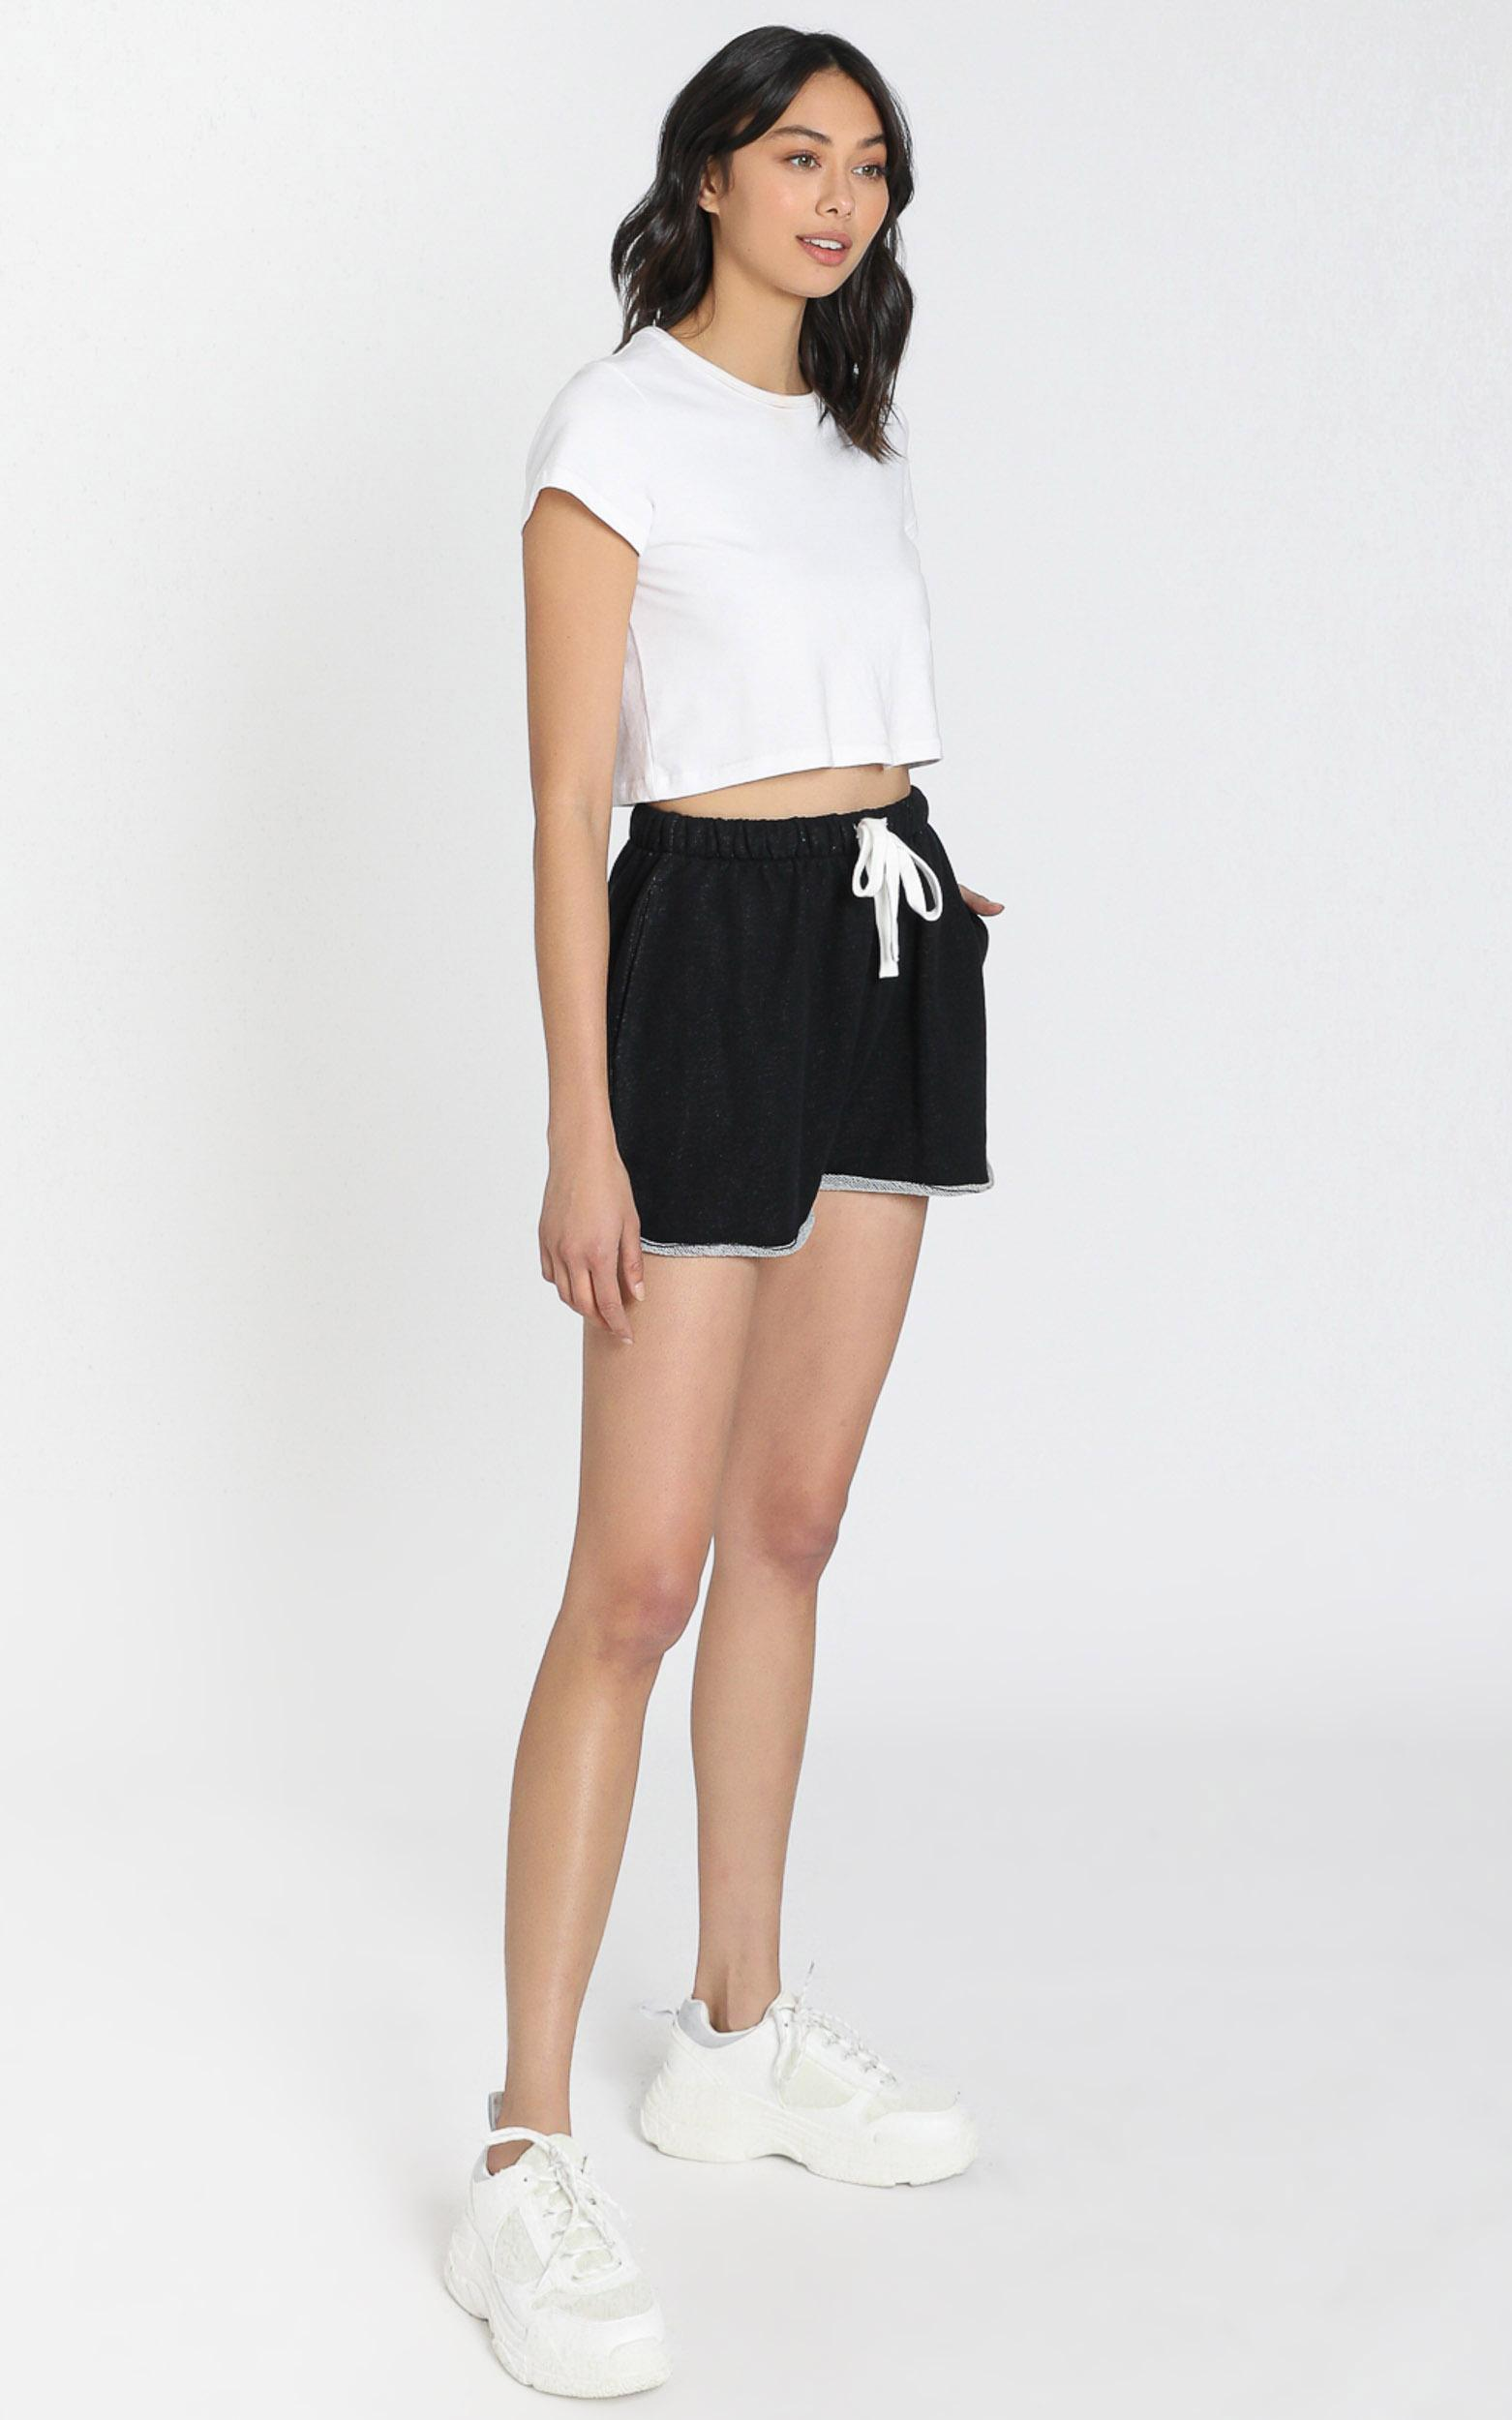 AS Colour - Perry Track Shorts in Black Marl - XS, Black, hi-res image number null